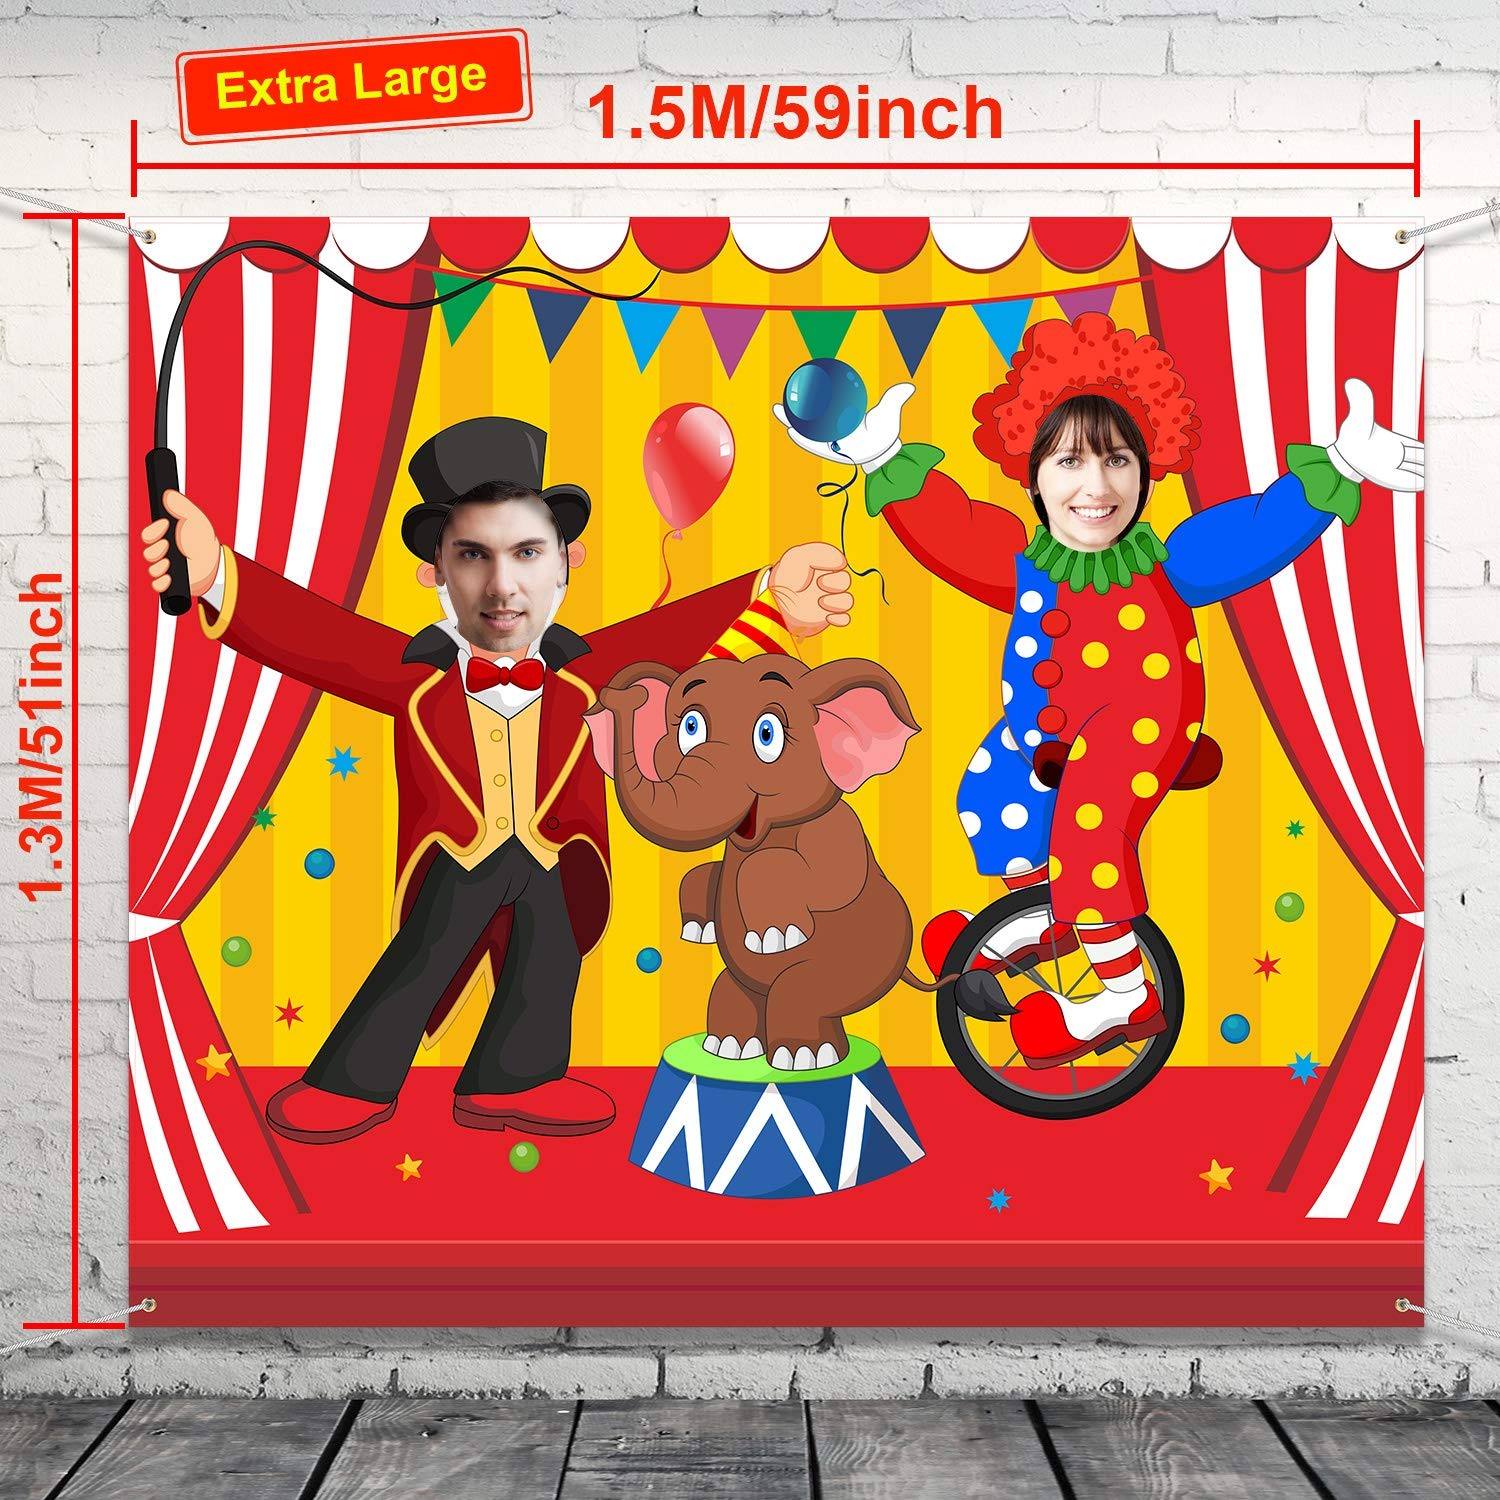 Carnival Circus Party Decoration Carnival Photo Door Banner Backdrop Props Large Fabric Photo Door Banner for Carnival Circus Party Decor Carnival Game Supplies Acrobatics